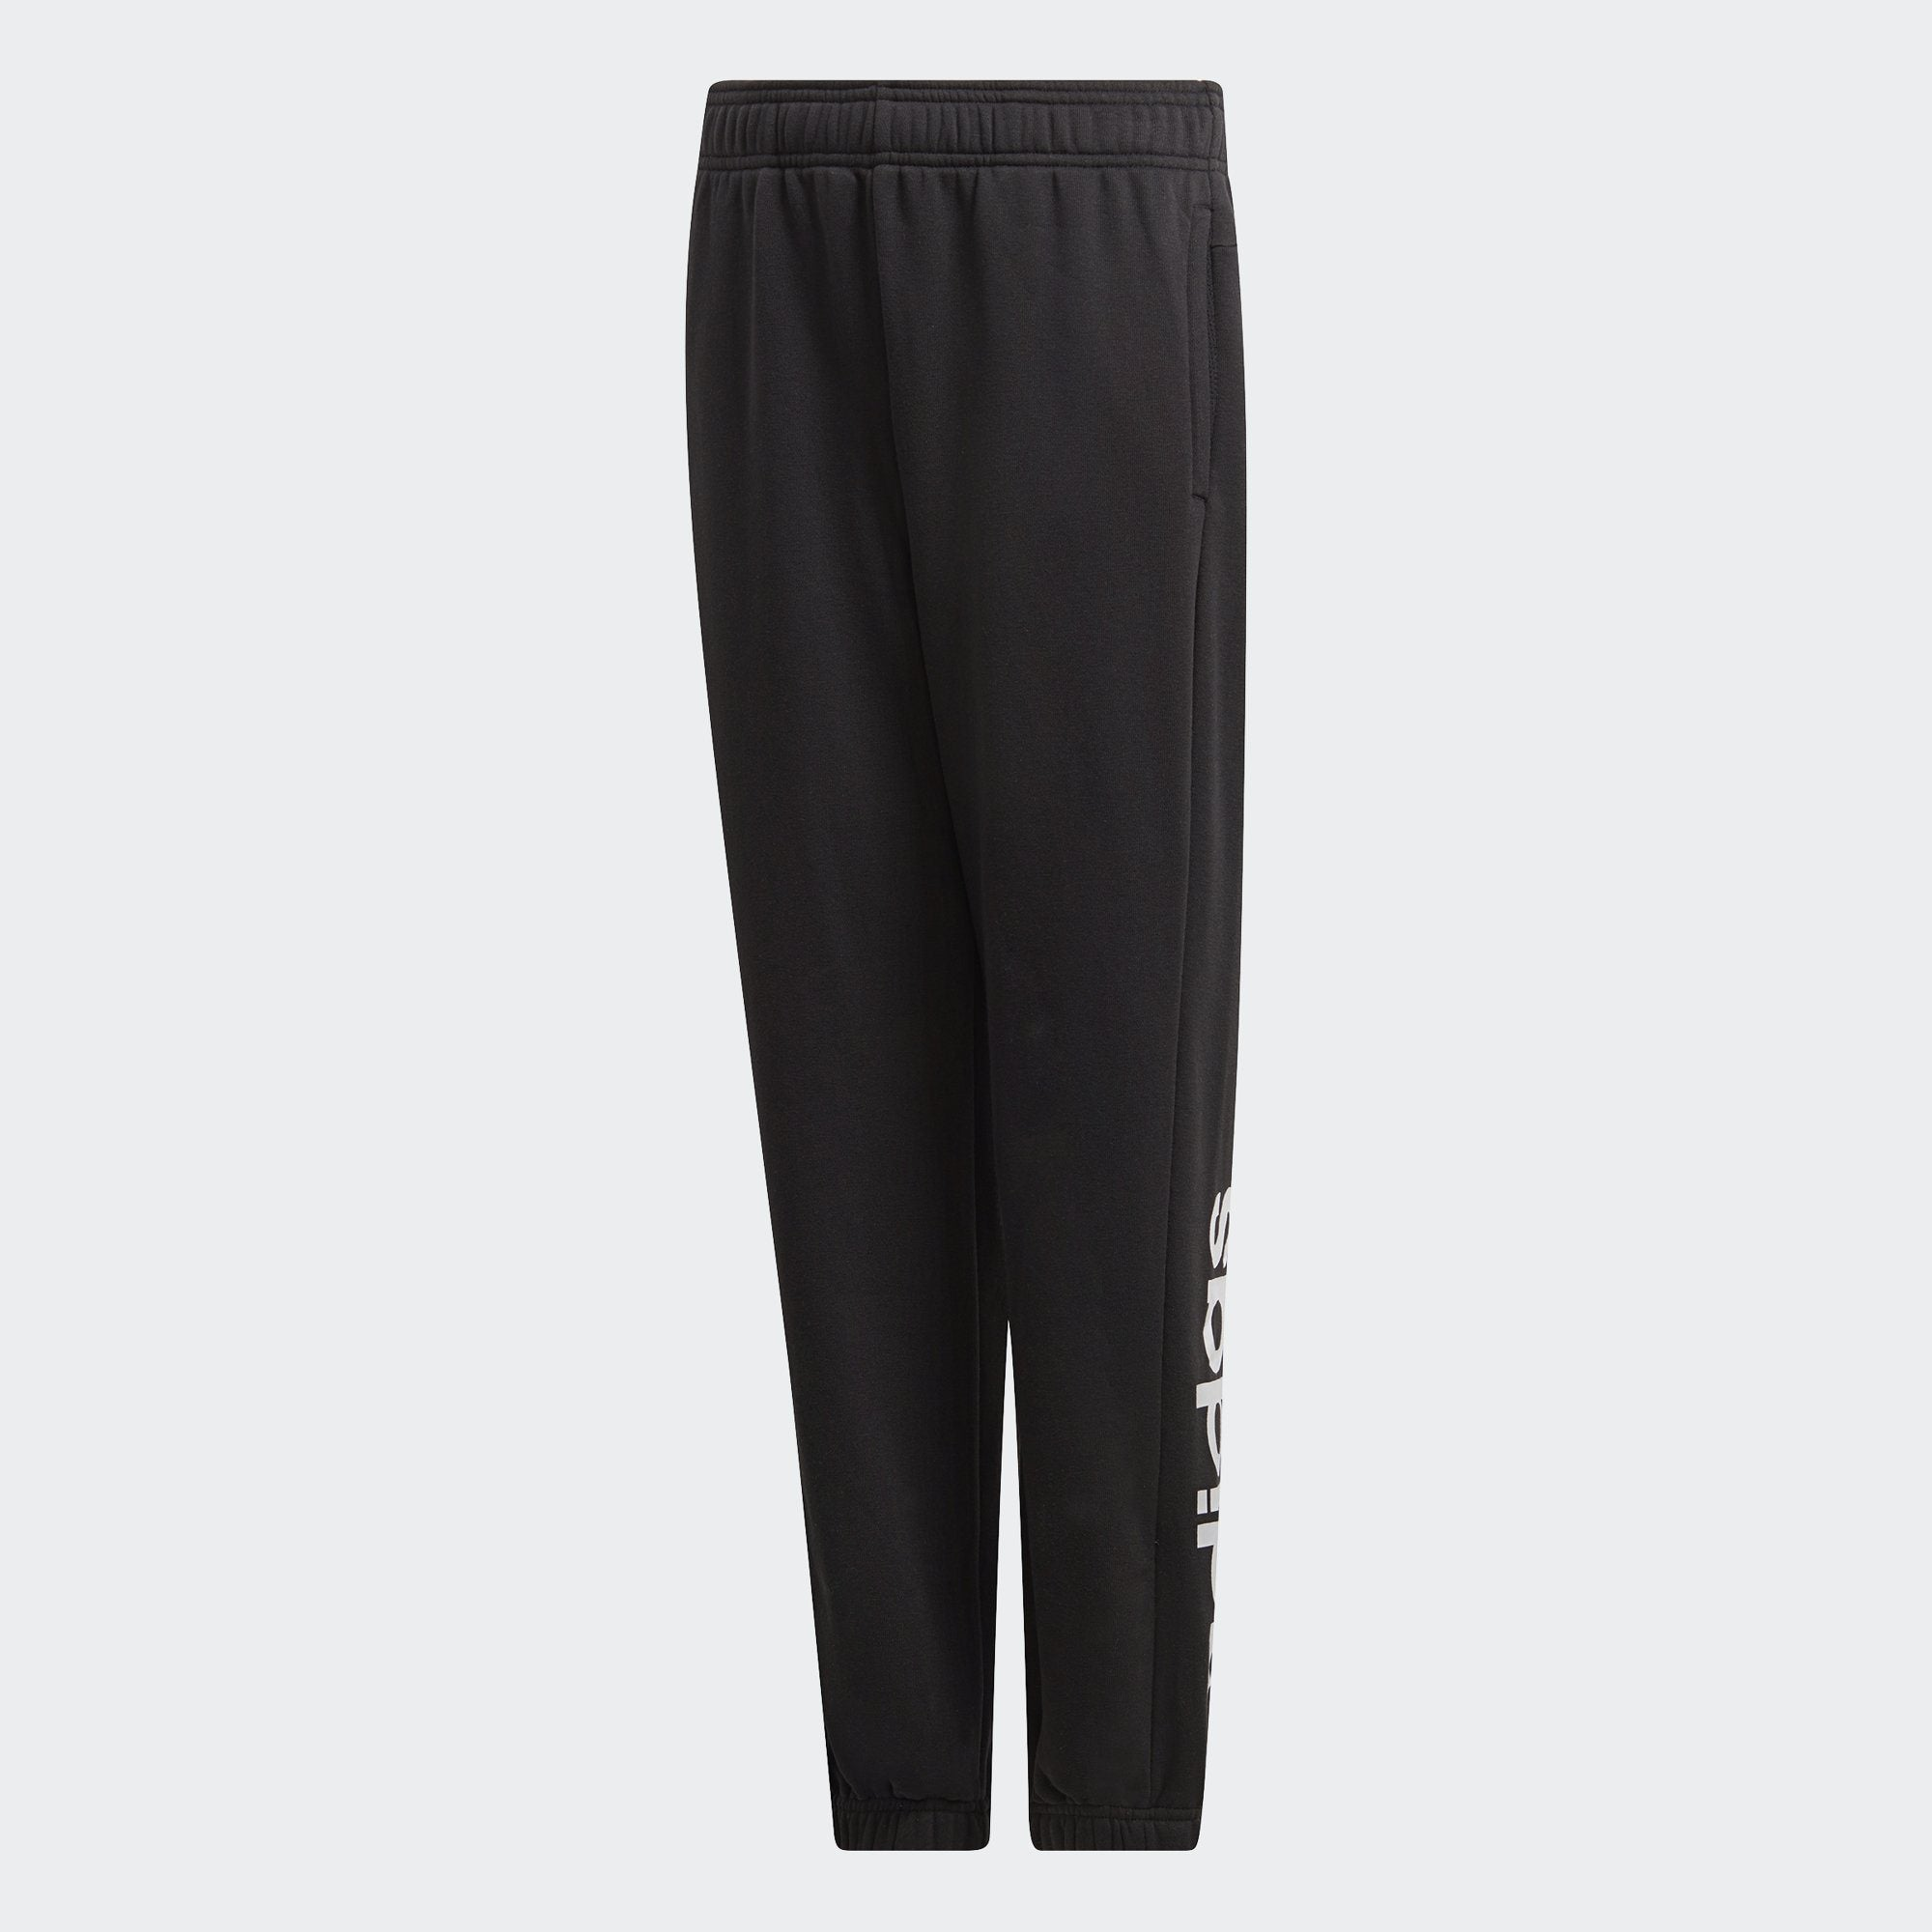 Adidas Boys Essentials Linear Pants - black-white Boys Apparel Adidas